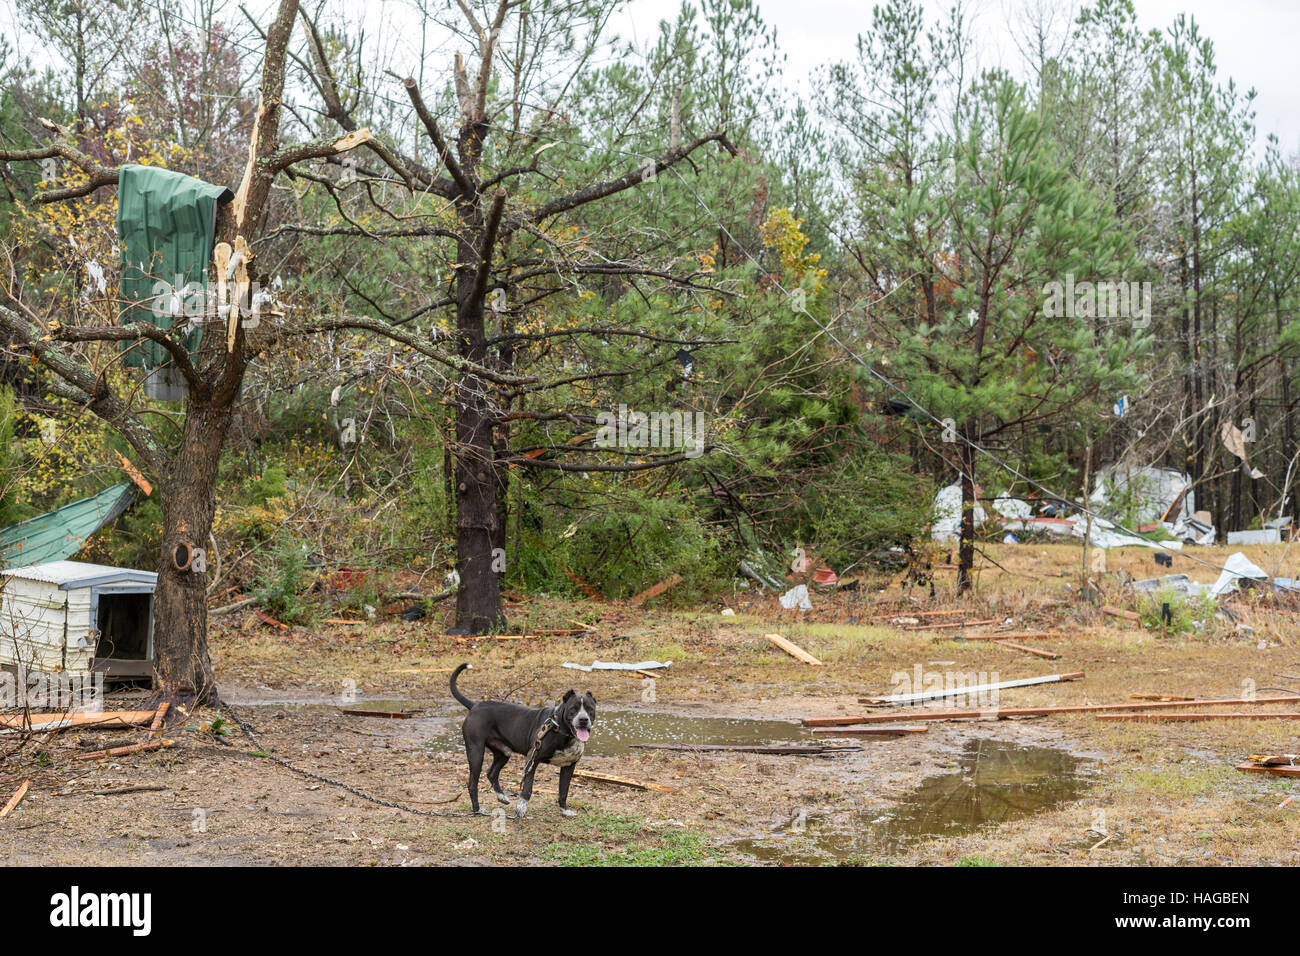 Sulligent, USA. 29th Nov, 2016. This dog was out all night, but survived the tornado just fine. Debris was scattered - Stock Image